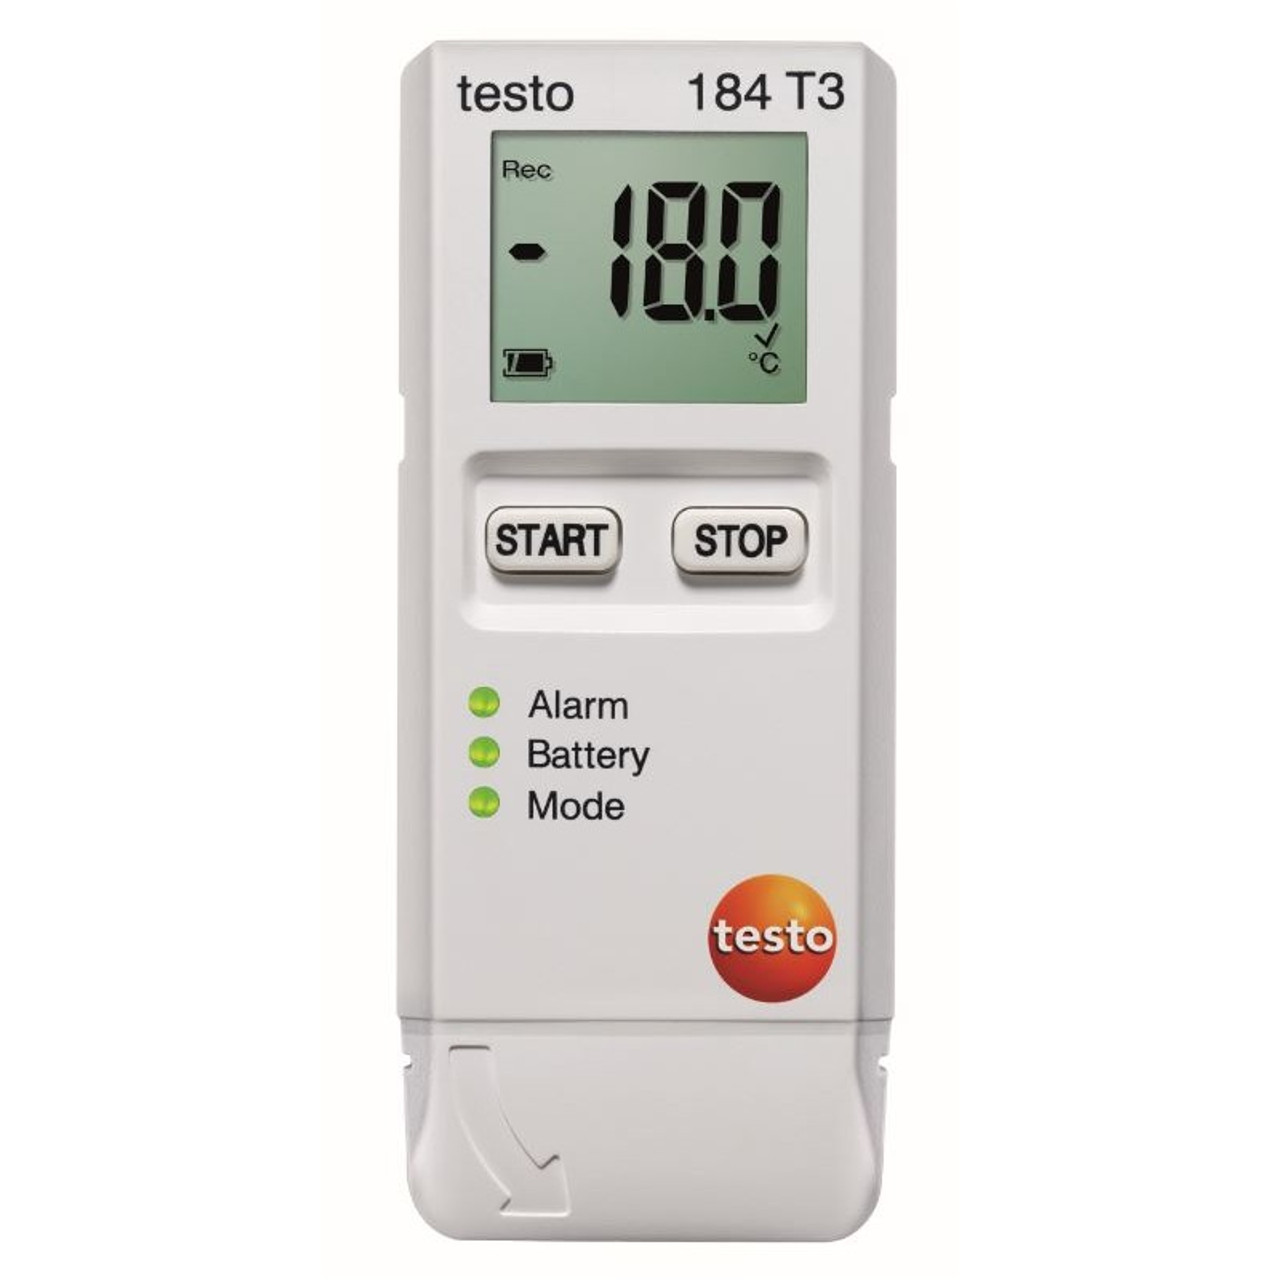 Testo 184 T3 temperature data logger.